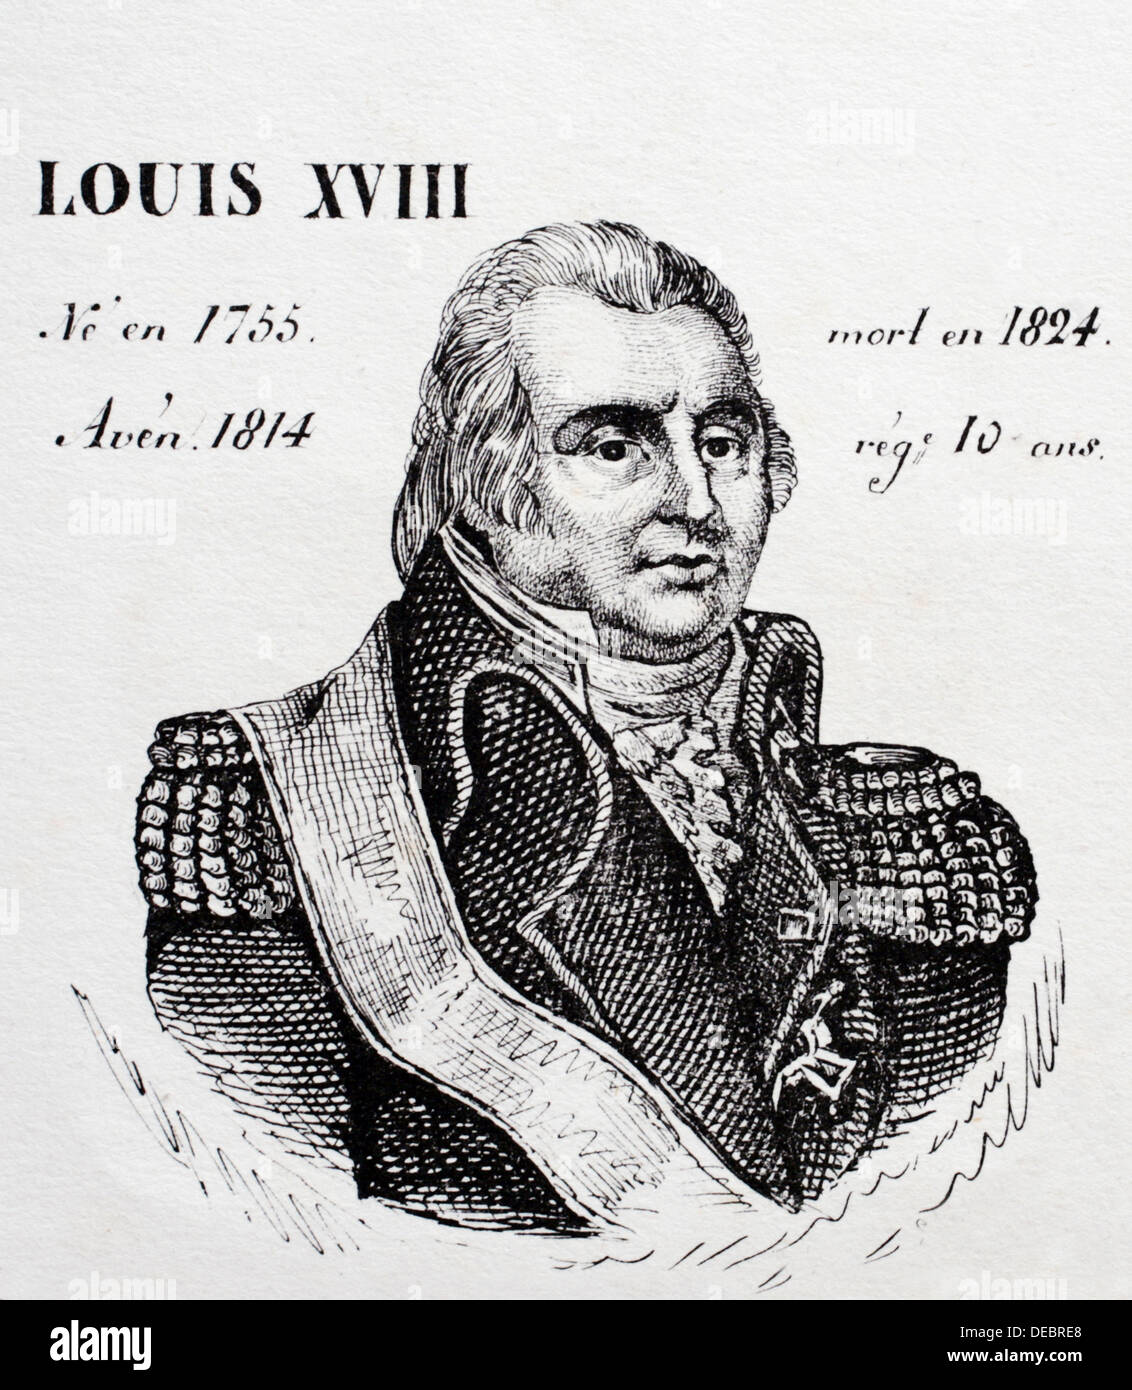 Louis XVIII, king of France from 1814 to 1824. History of France, by  J.Henry (Paris, 1842) - Stock Image